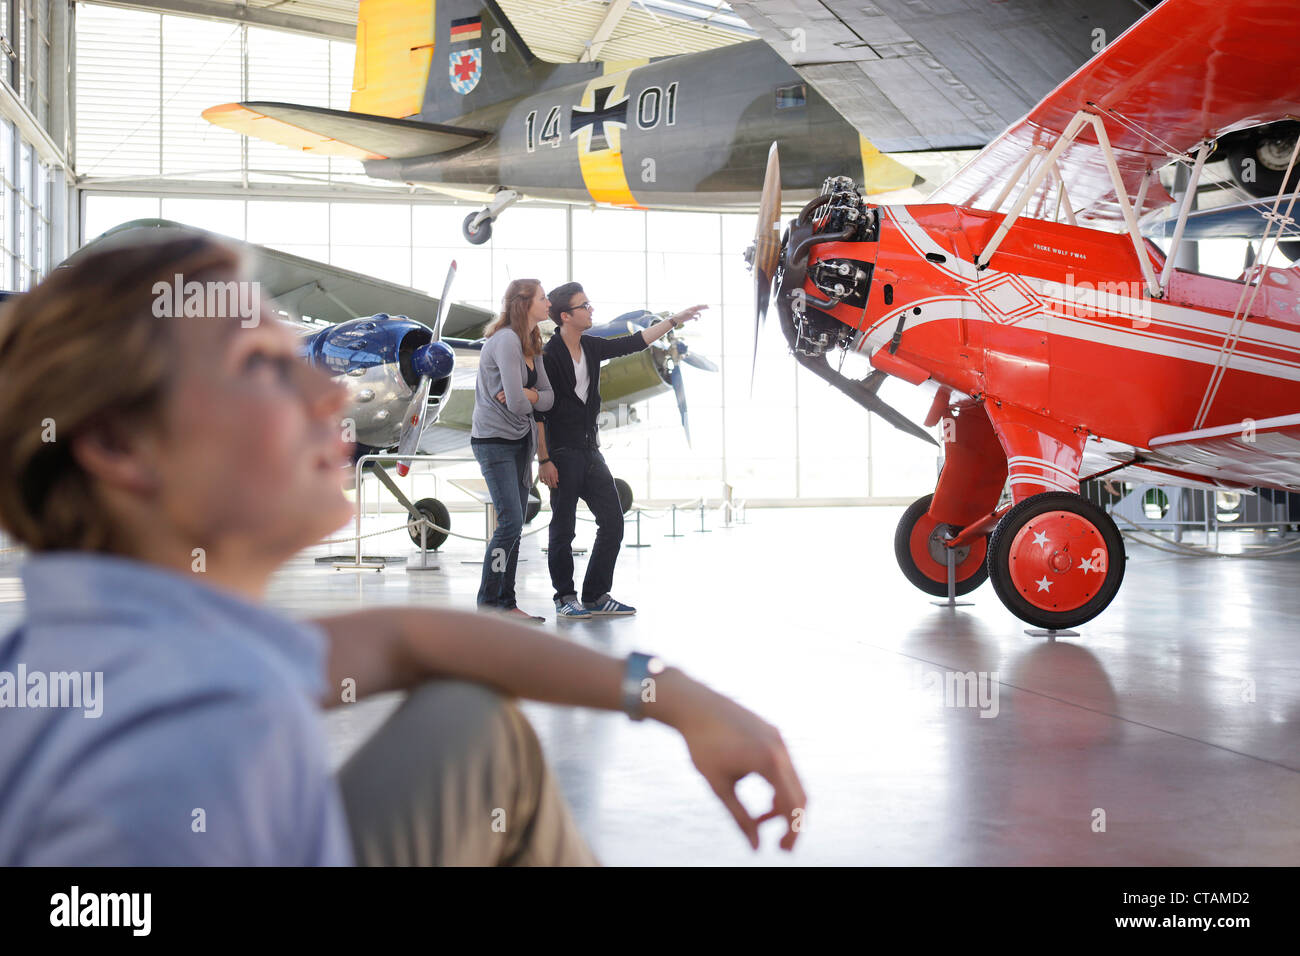 Students in the Aviation Museum, Deutsches Museum, German Museum, Oberschleissheim, Munich, Bavaria, Germany - Stock Image